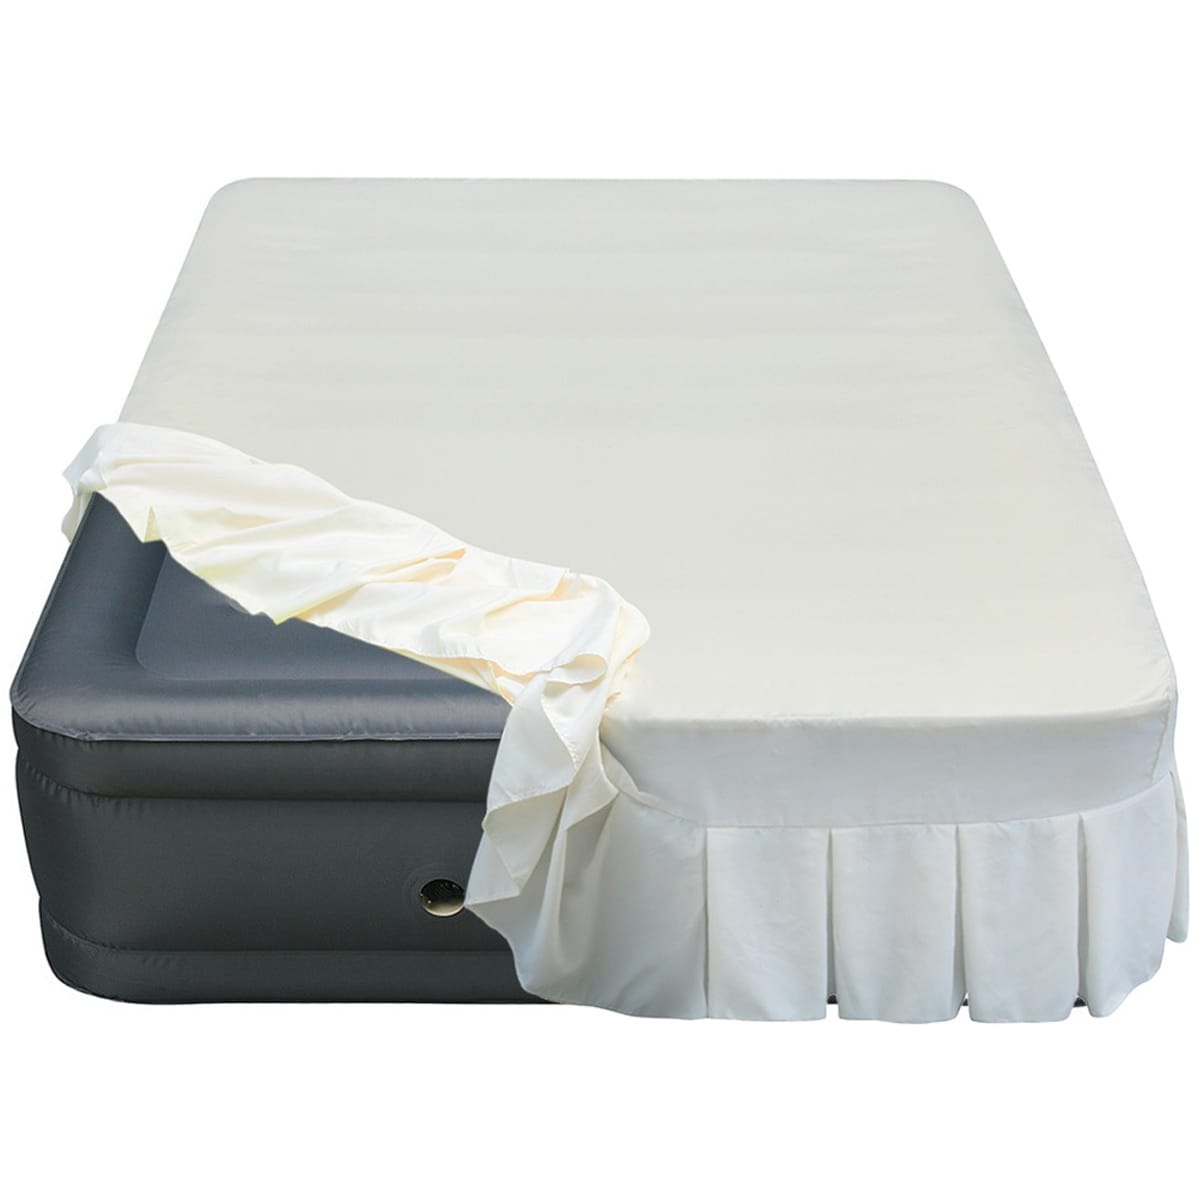 Overstock.com Altimair Raised 20-inch Queen-size Airbed with Perfectly Fitted Skirted Sheet Cover at Sears.com